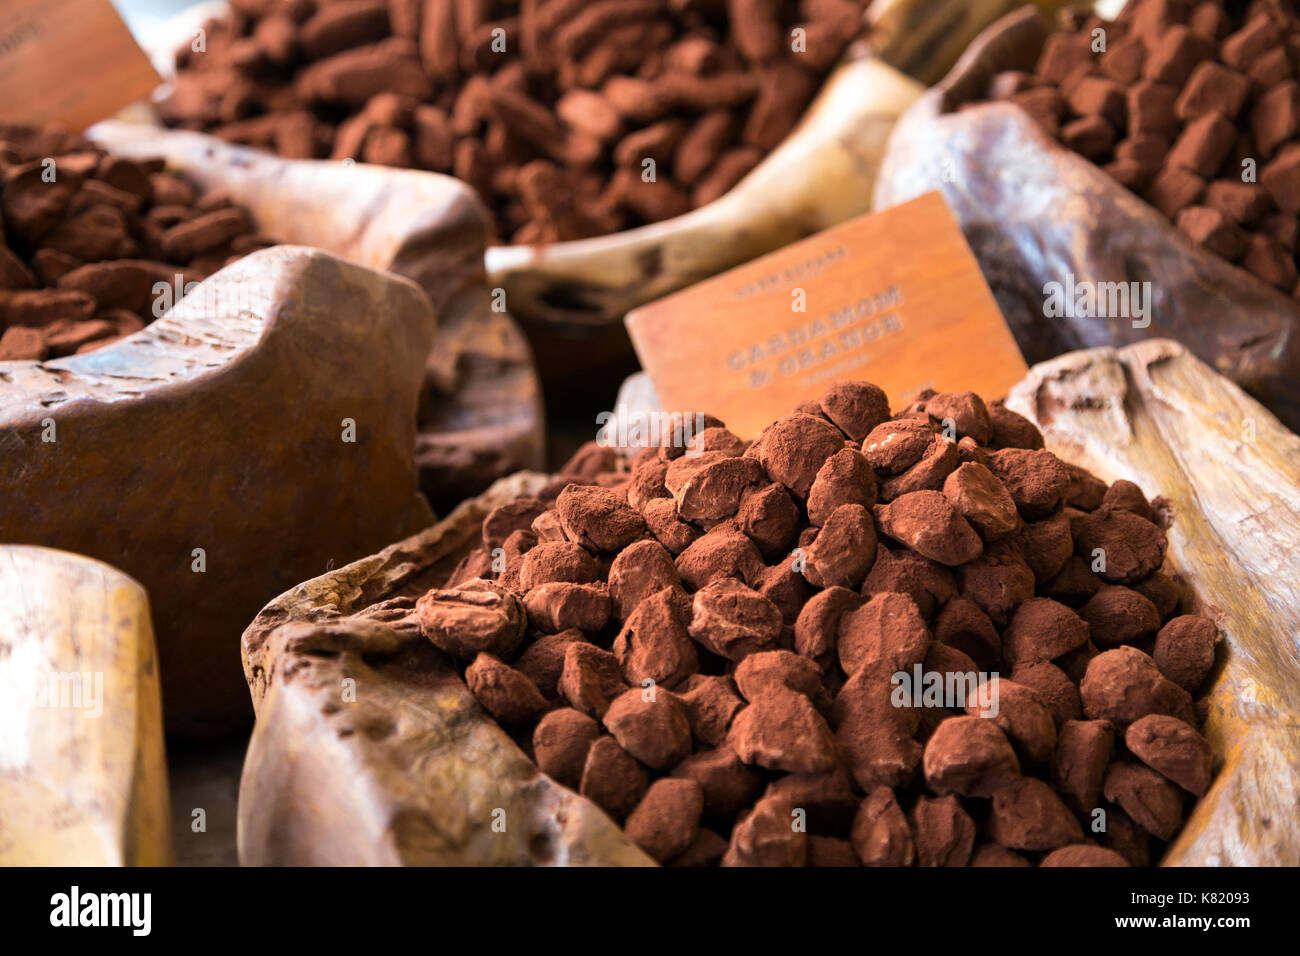 Cocoa dusted truffles on display in wooden bowls (Dark Sugars Cocoa House, London, UK) - Stock Image